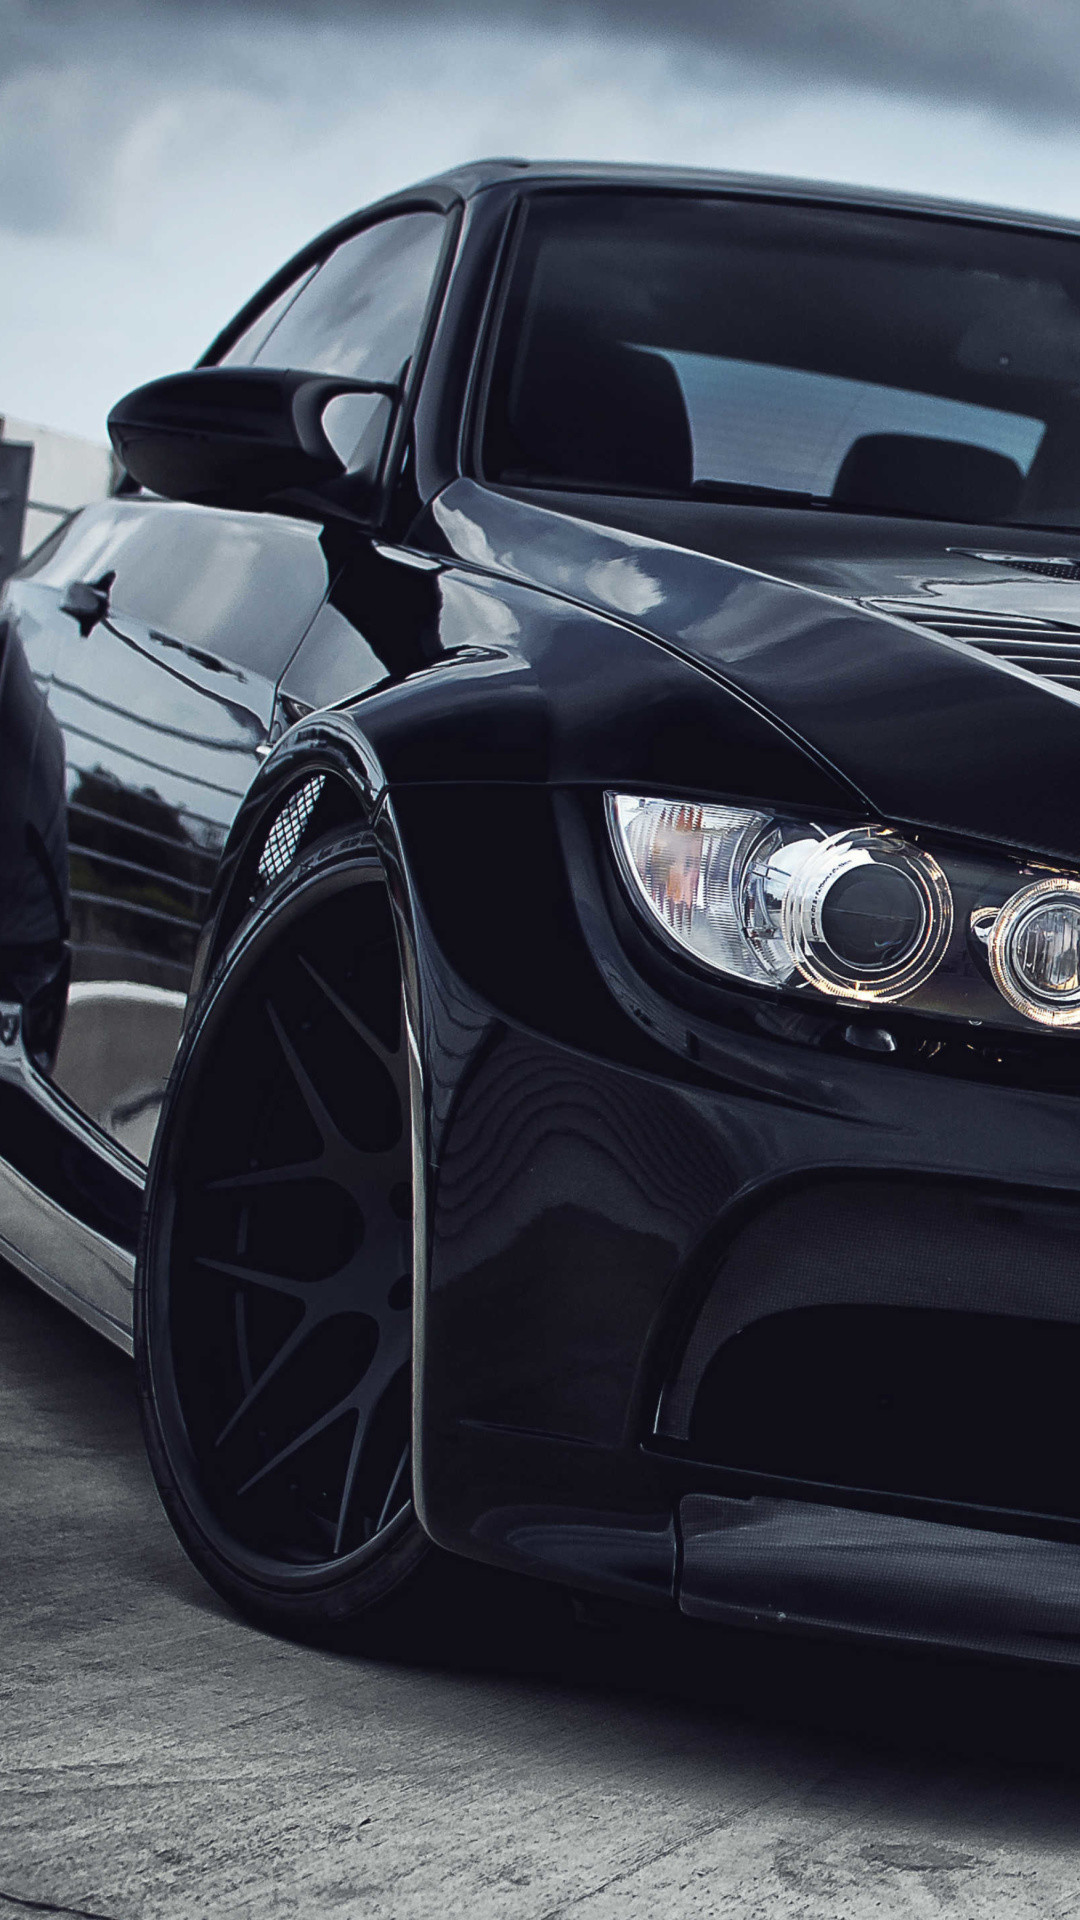 Bmw Wallpapers for iPhone 6 Plus